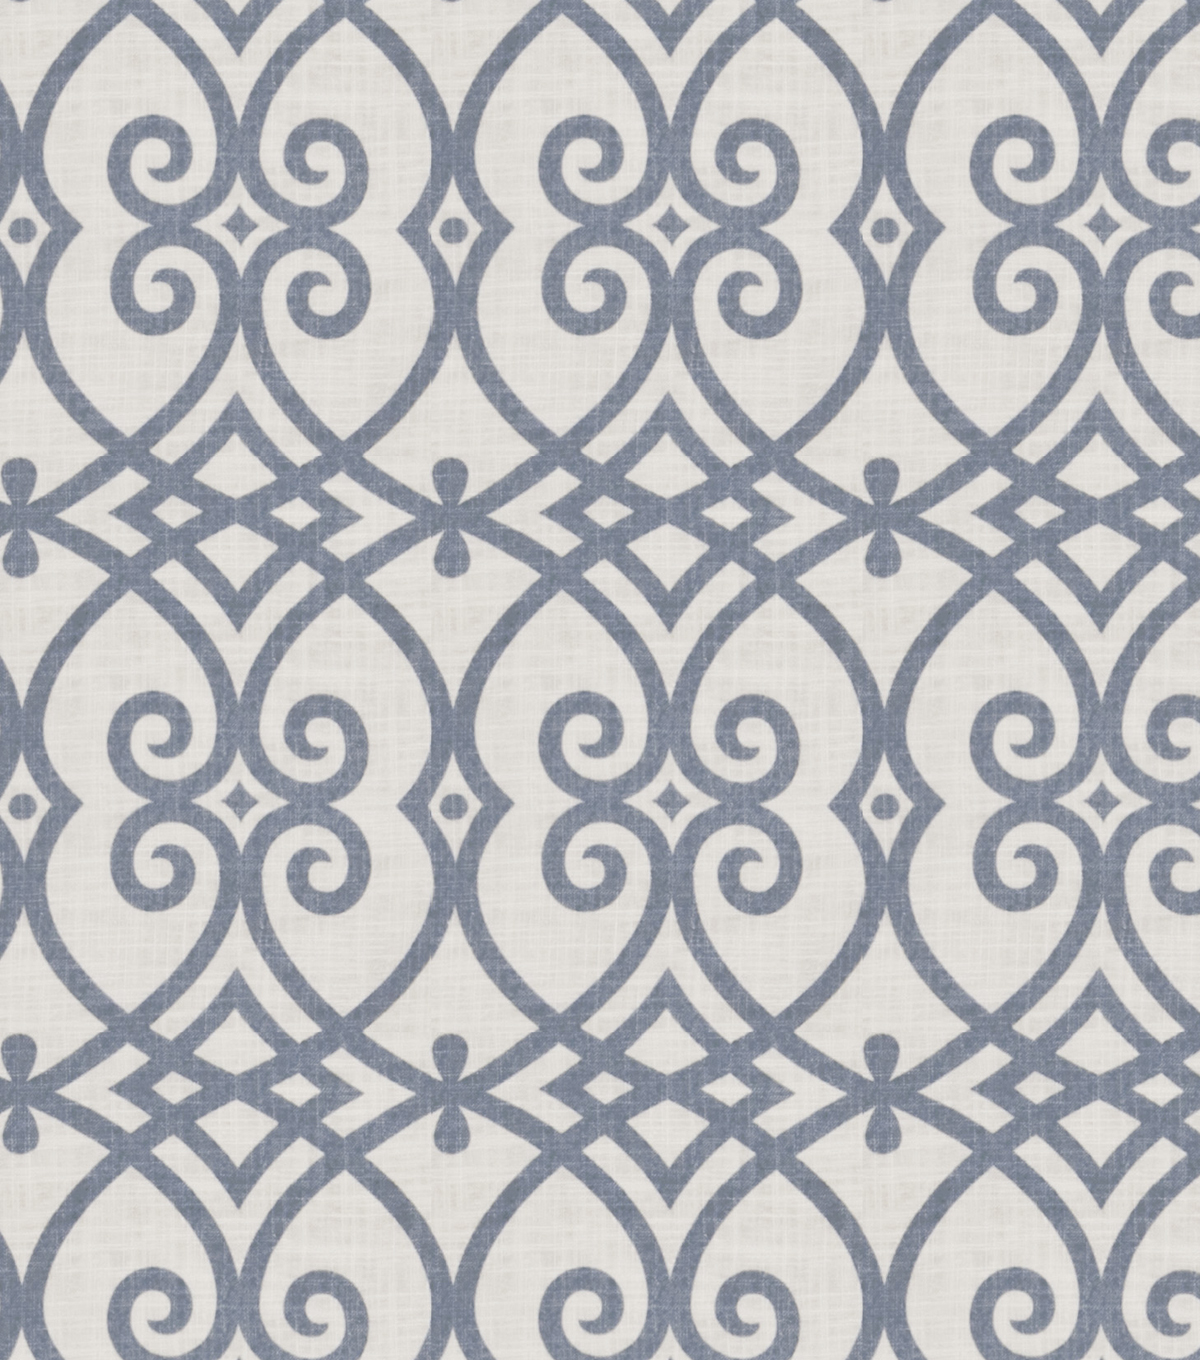 Jaclyn Smith Multi-Purpose Decor Fabric 54\u0022-Gatework Rot/Indigo